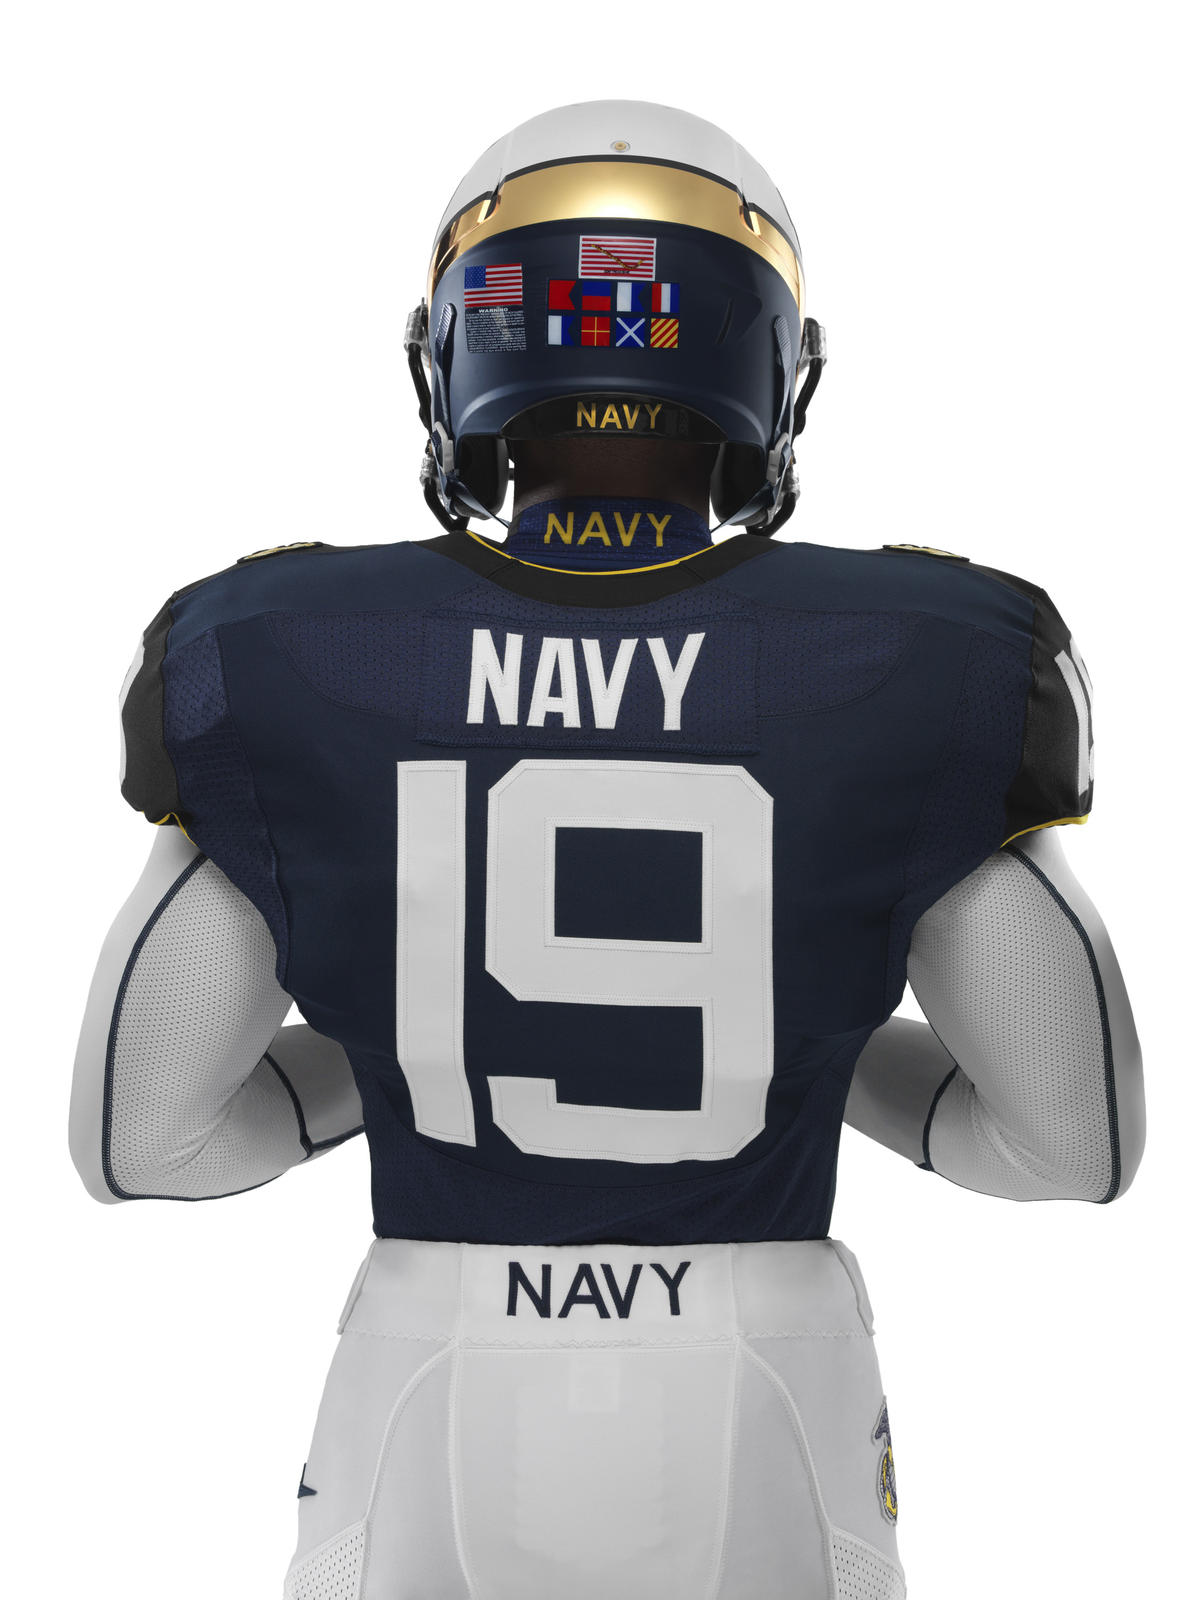 Army and Navy - New Nike Uniforms for 114th Meeting - Nike